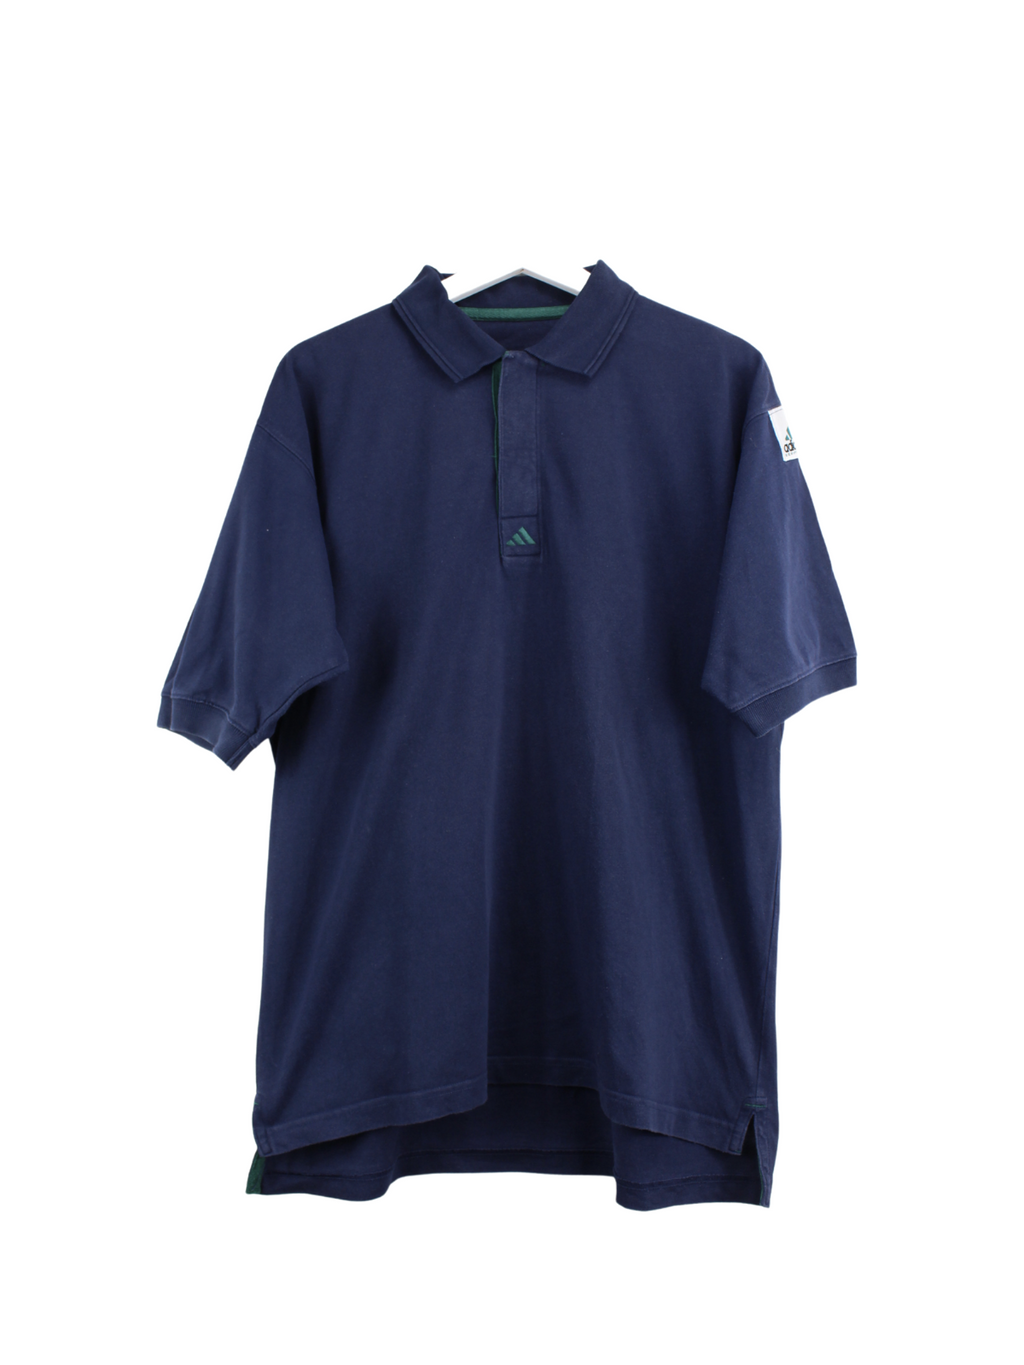 Adidas Equipment Poloshirt Blau XL